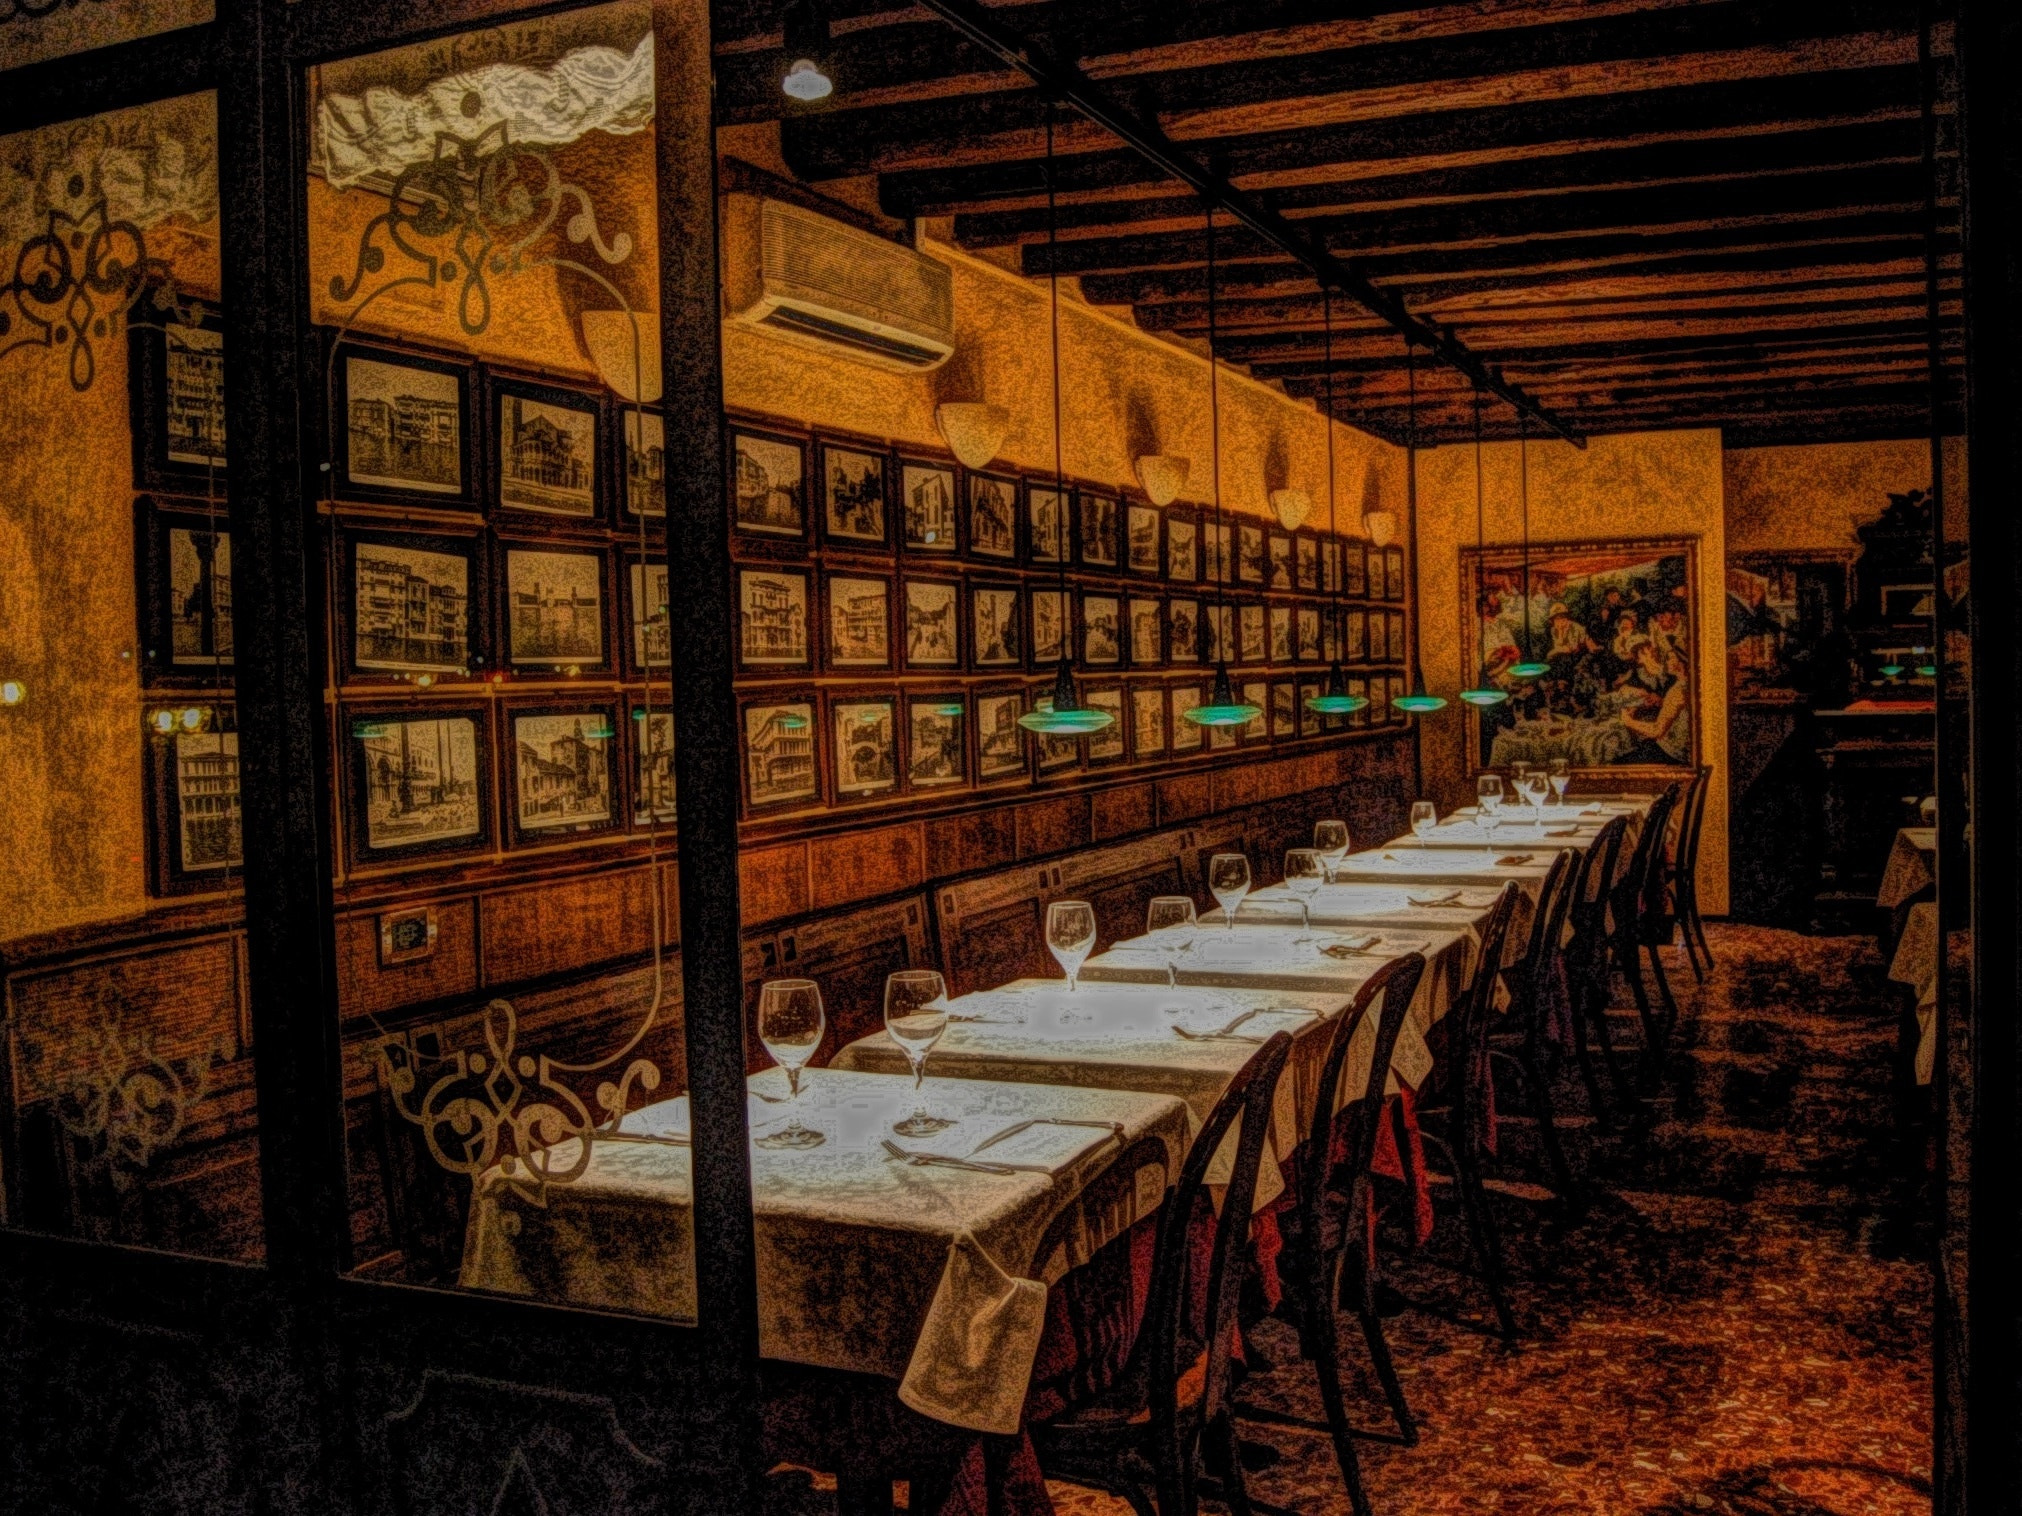 Photograph A place for dinner by Gustimbaldo Del Piero on 500px